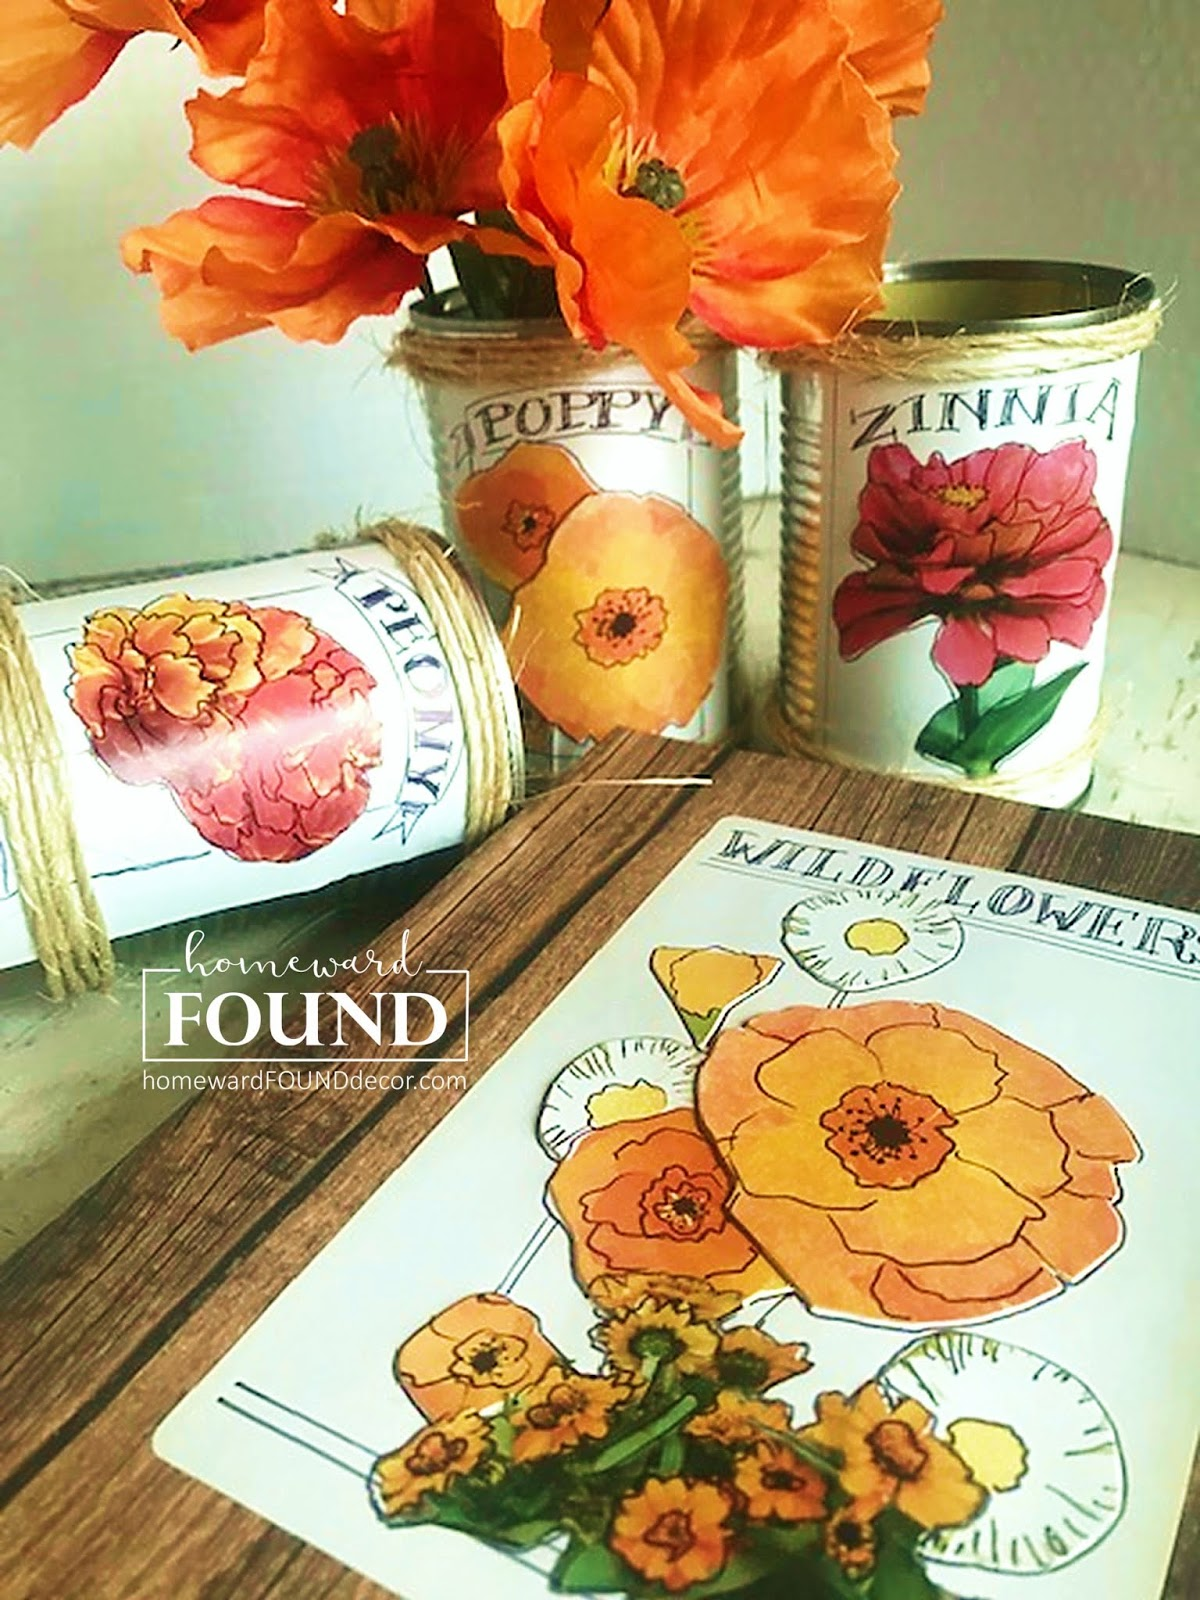 Seed packet art by Homeward Found, featured on DIY Salvaged Junk Projects 524 on Funky Junk!